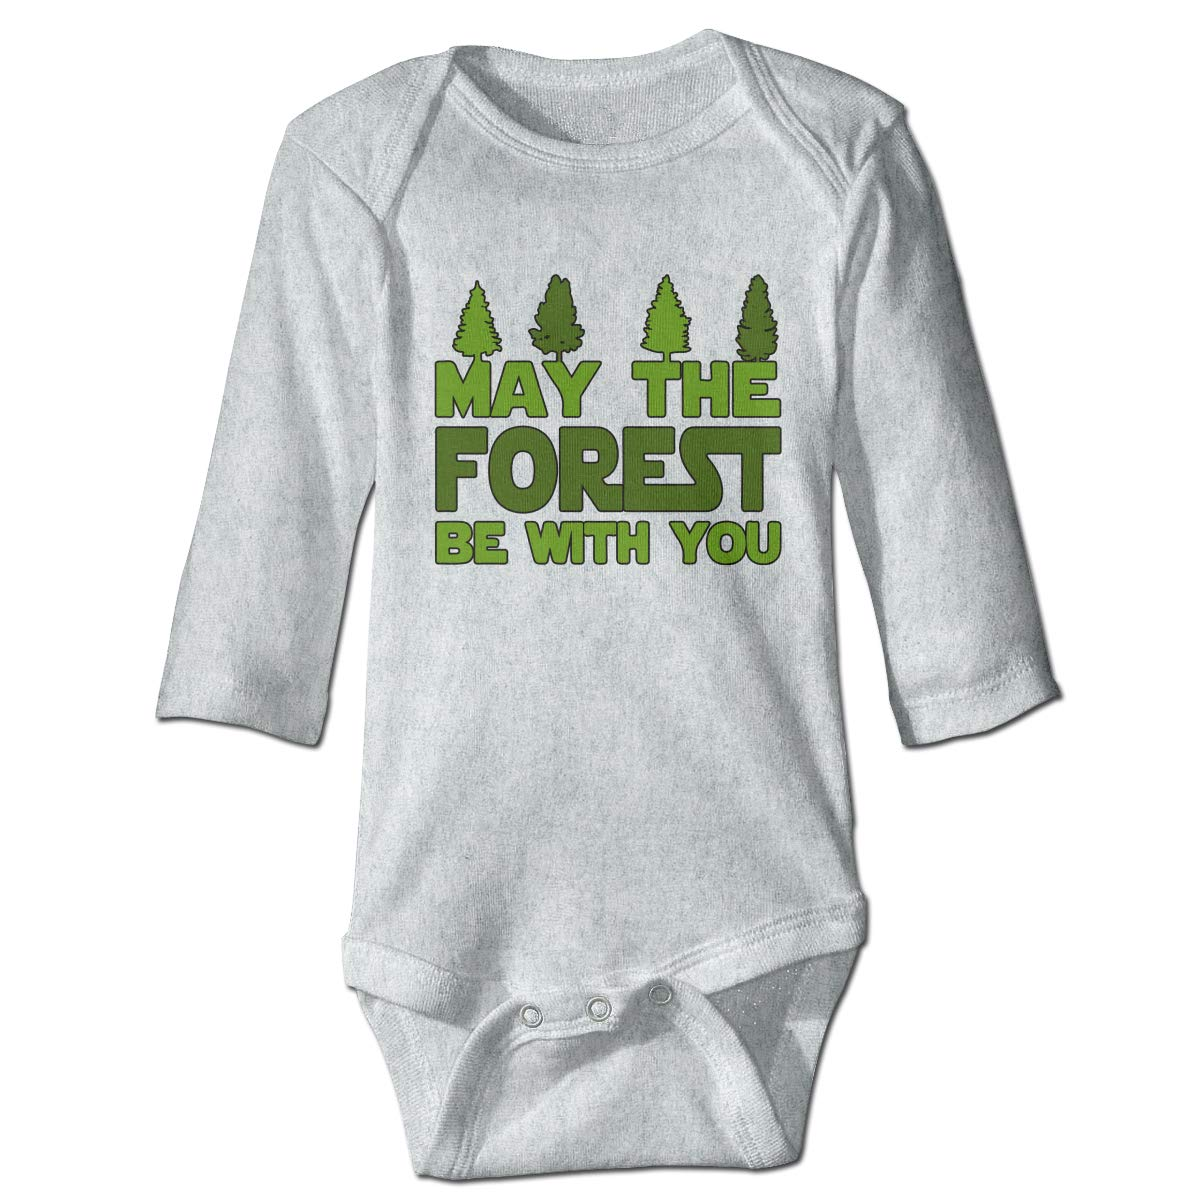 A14UBP Baby Infant Toddler Romper Bodysuit Jumpsuit May The Forest Be with You2 Long Sleeve Funny Baby Clothes